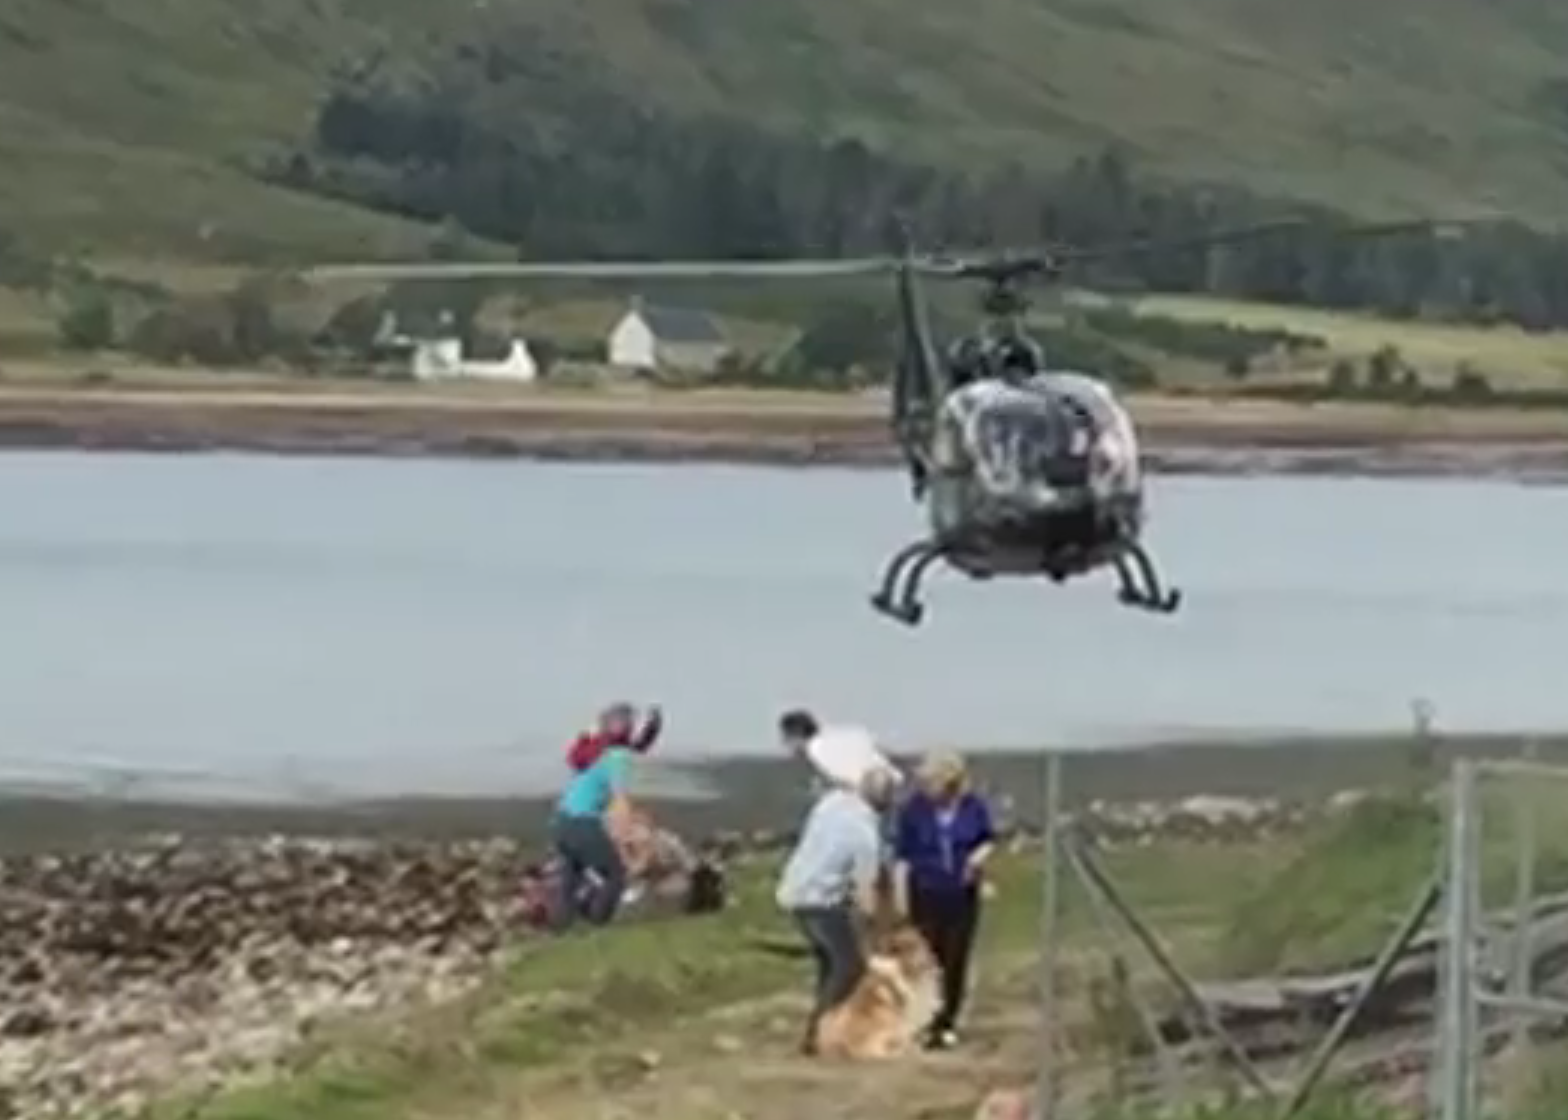 Picnickers flee as the helicopter comes in to land